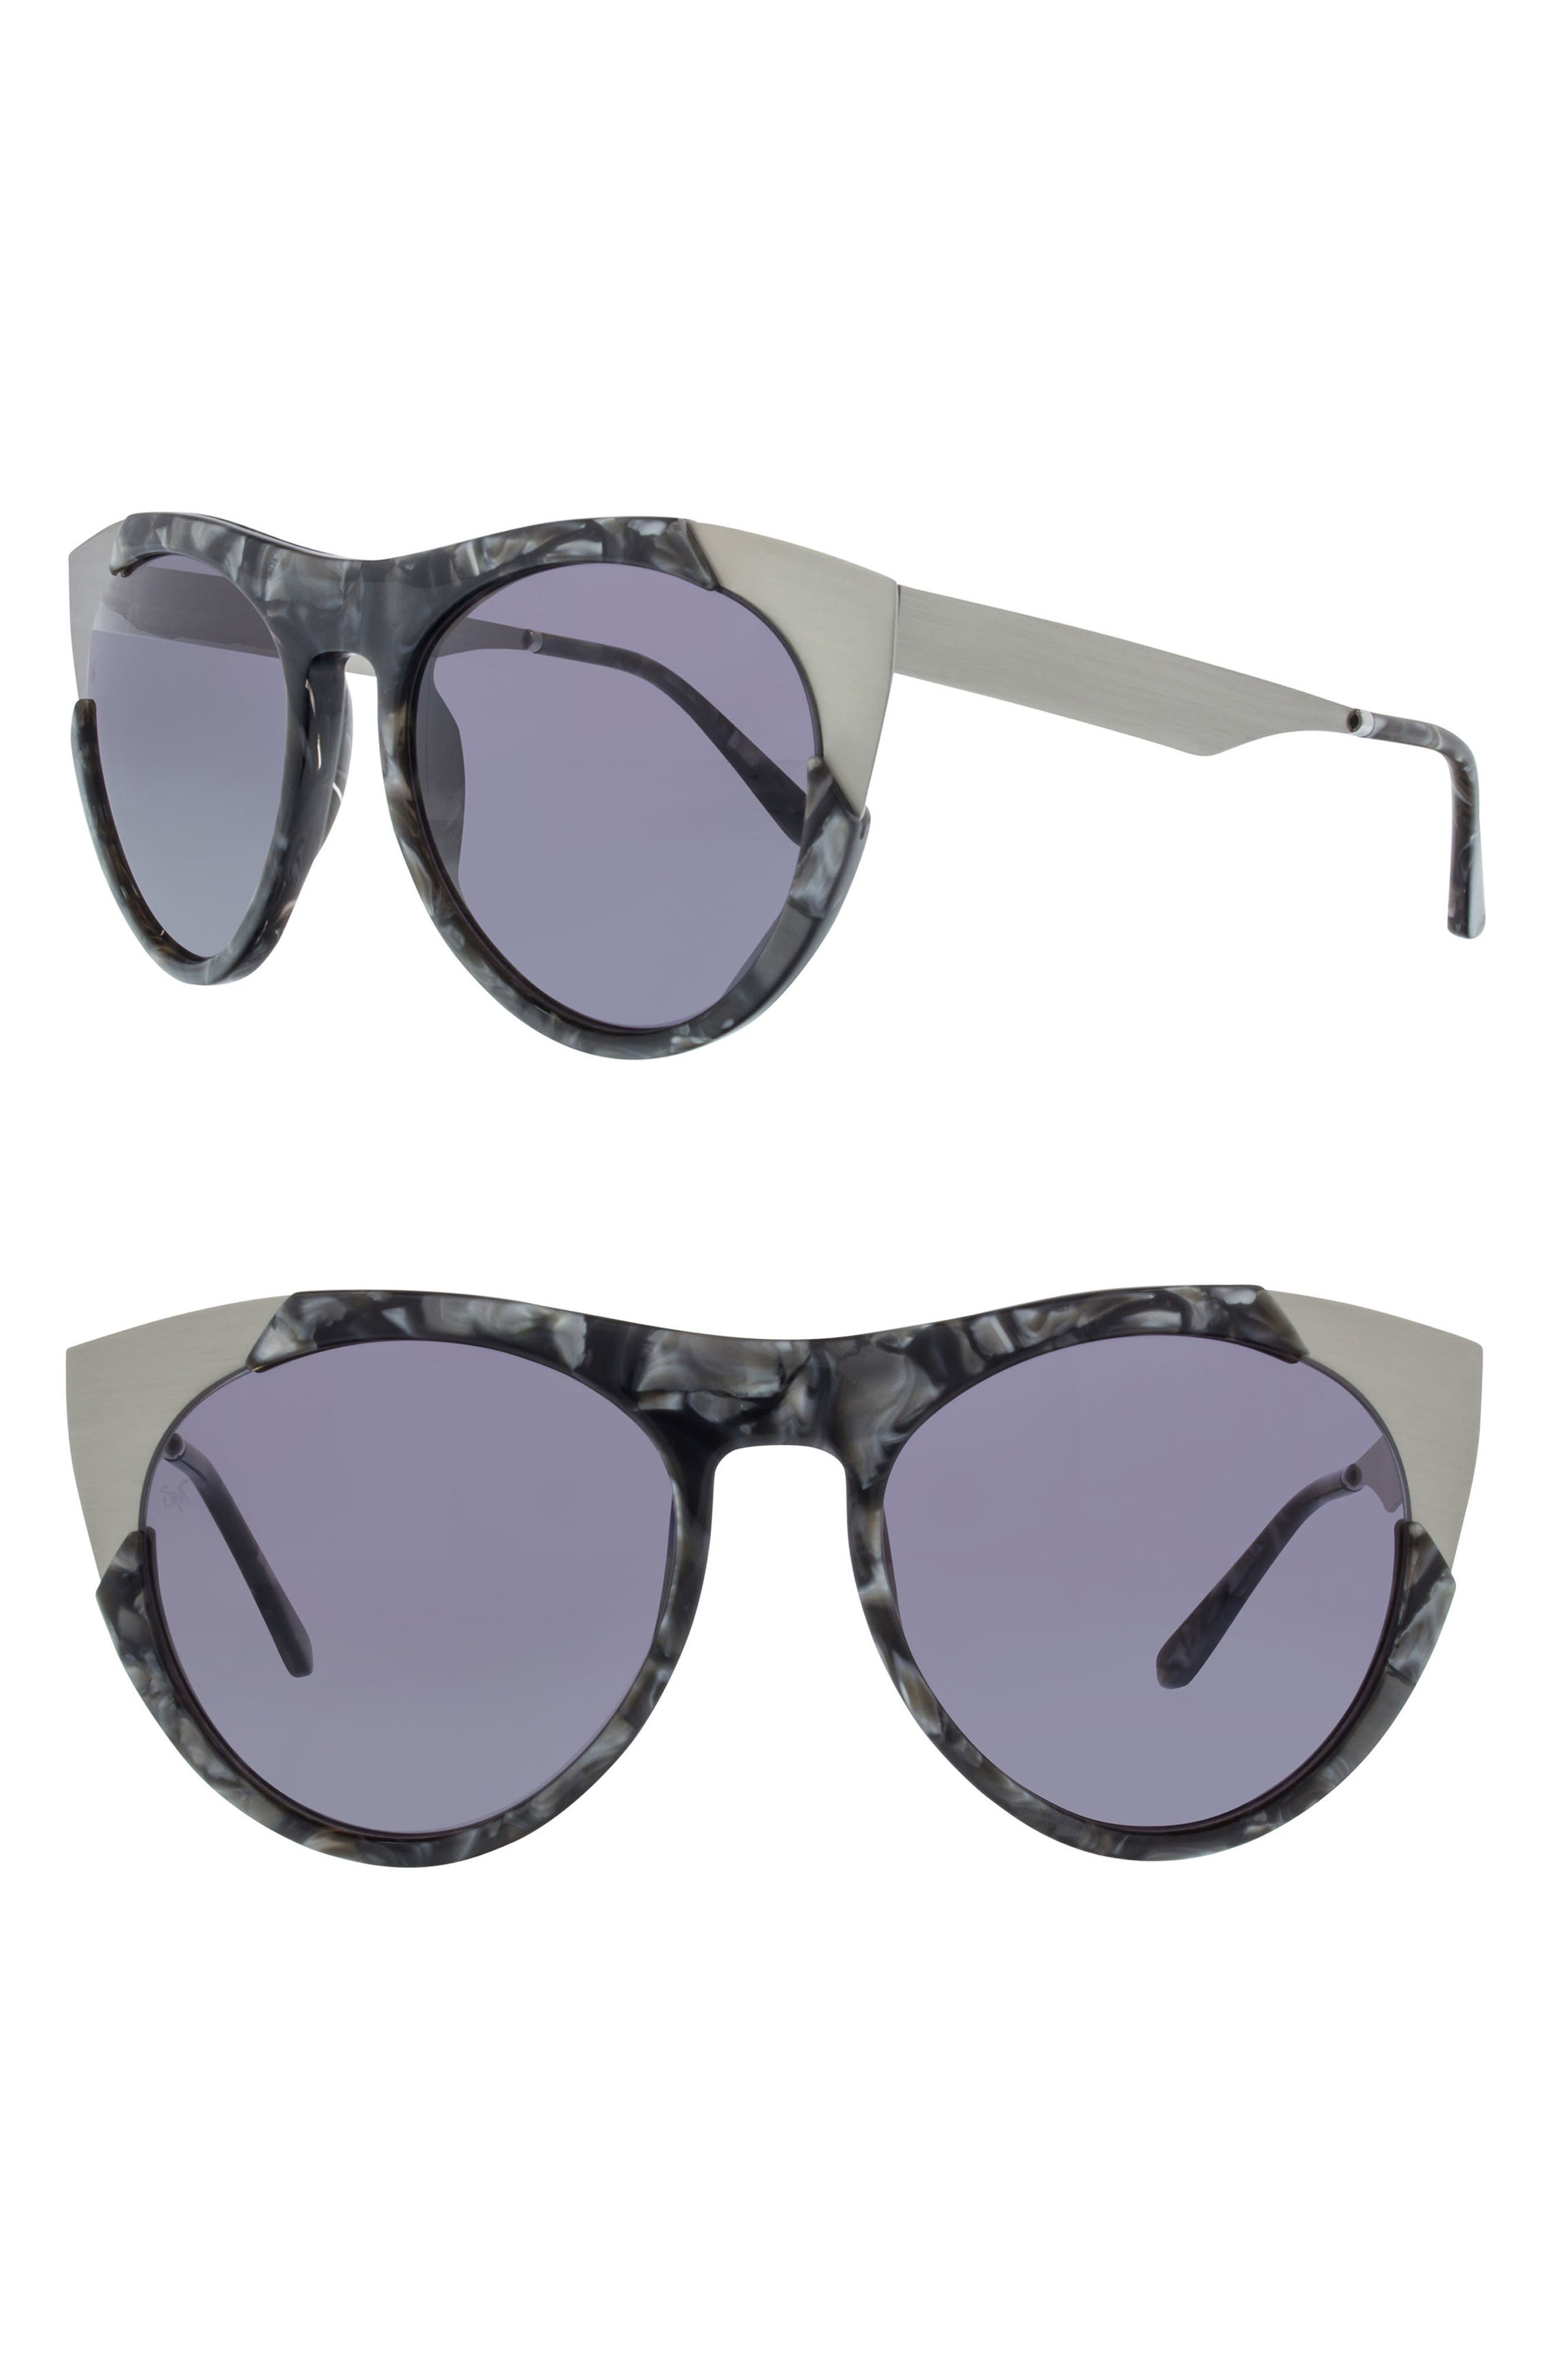 Zoubisou 53mm Cat Eye Sunglasses,                             Main thumbnail 1, color,                             BLACK SCALES/ BRUSHED SILVER